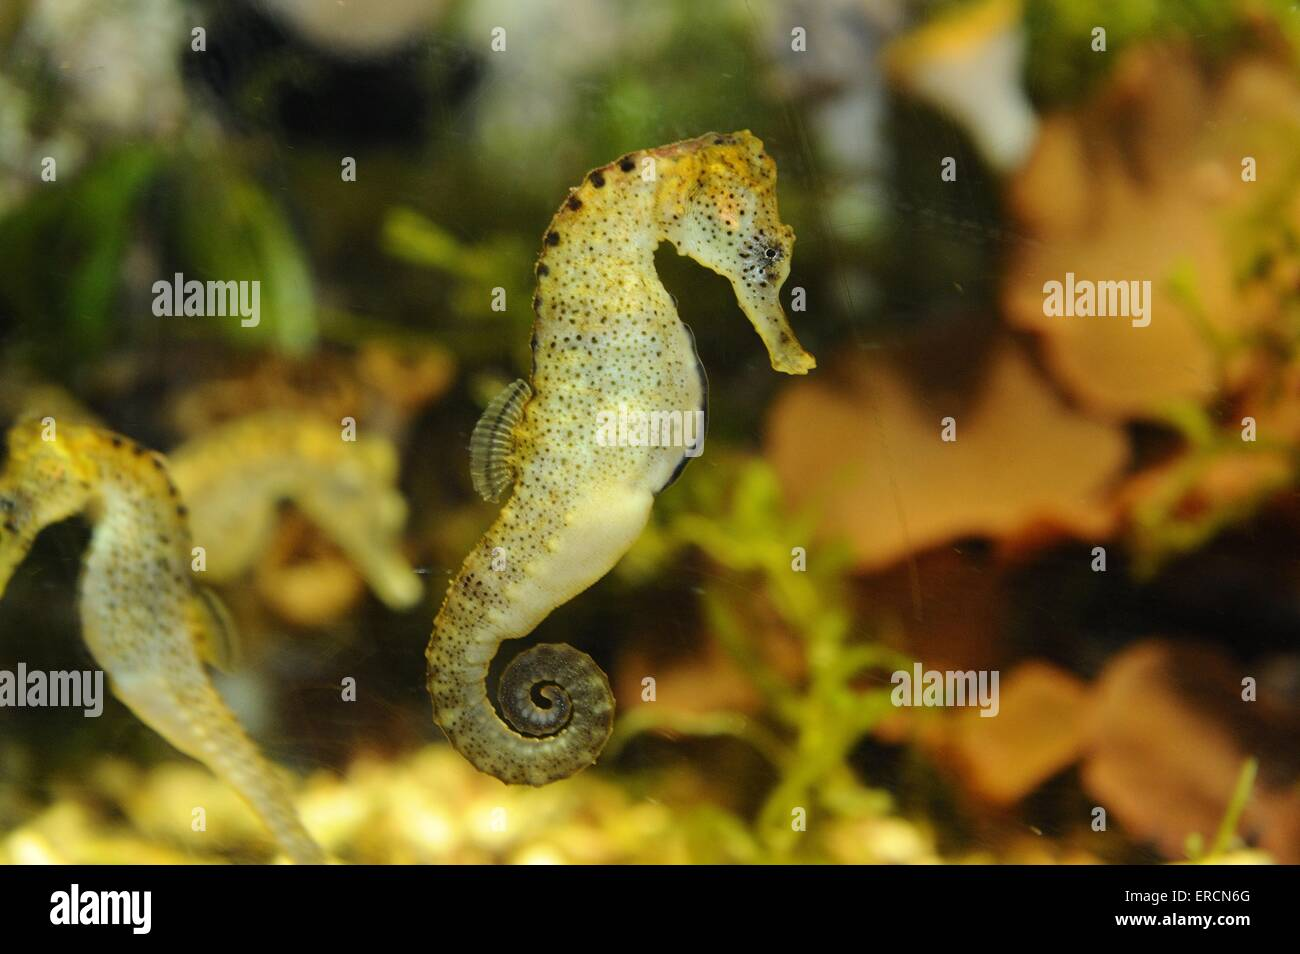 short snouted seahorse - Stock Image